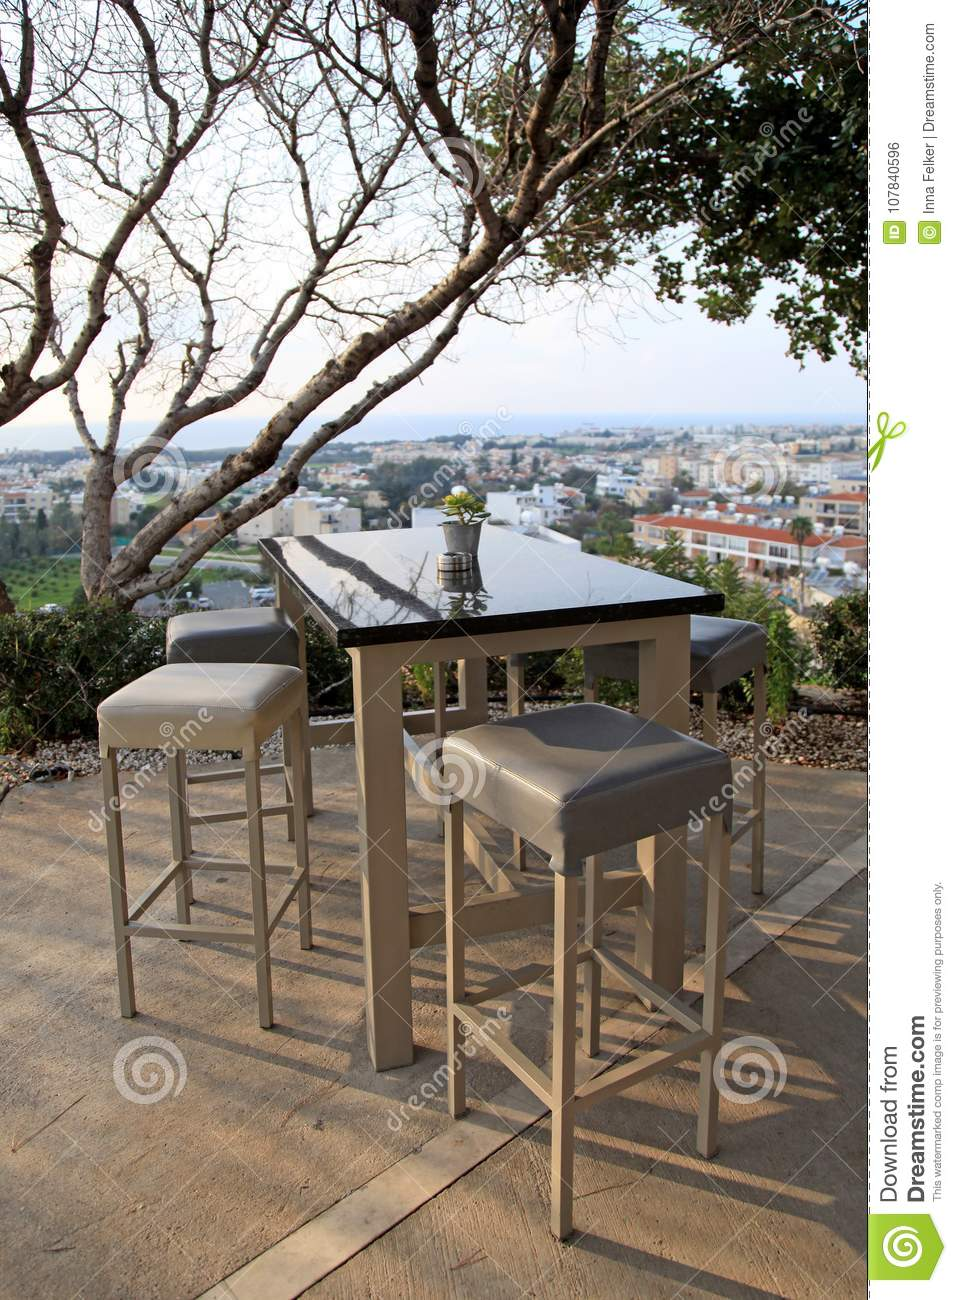 Groovy High Table And Chairs In Outdoor Cafe Cyprus Stock Photo Machost Co Dining Chair Design Ideas Machostcouk